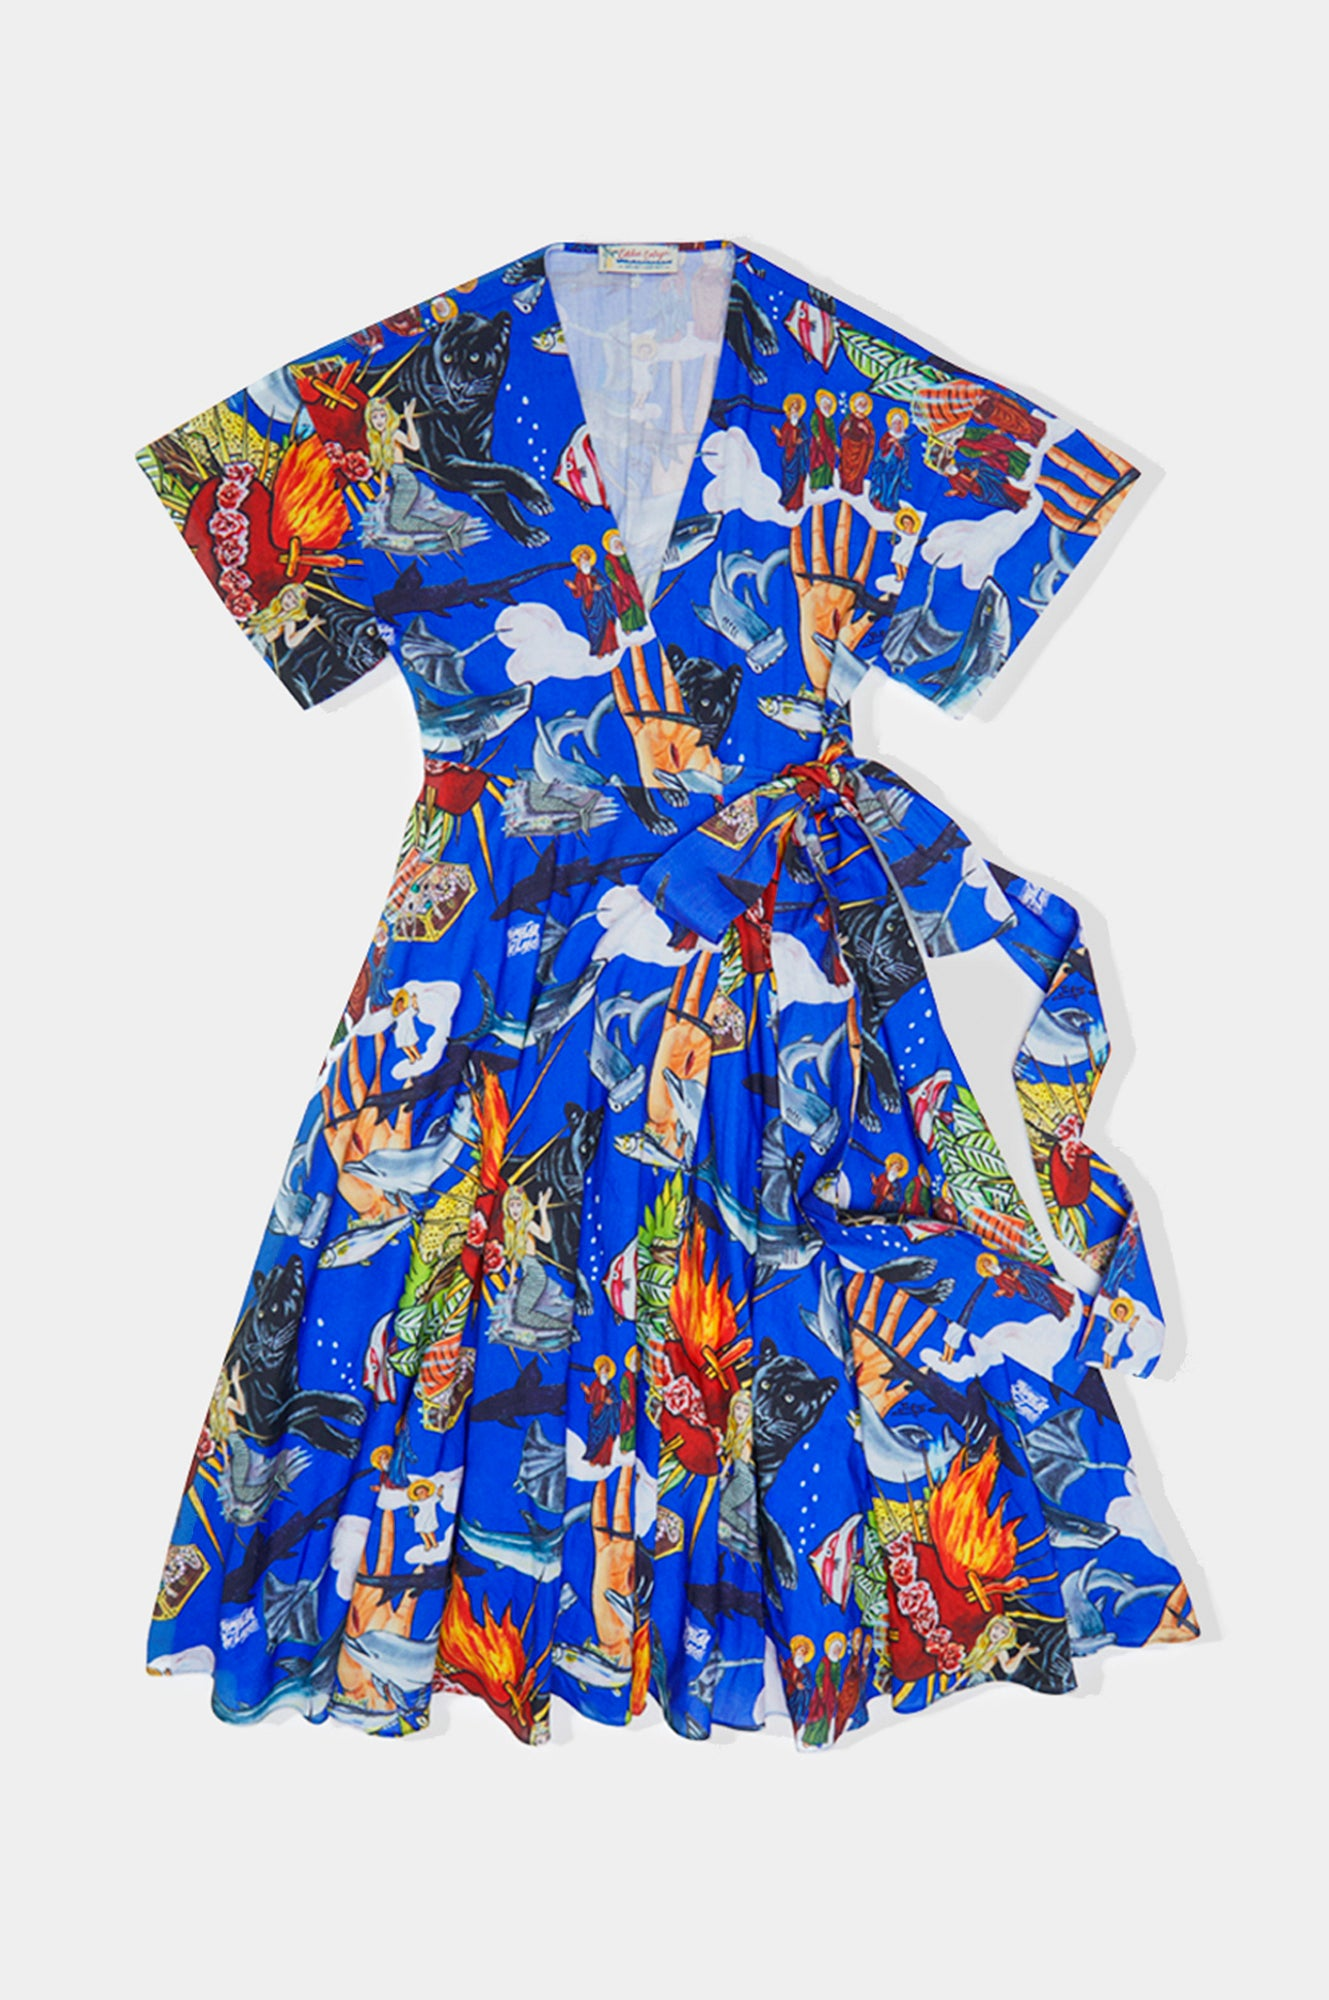 POPULAR DE LUJO PRINT WRAP DRESS - Esteban Cortazar